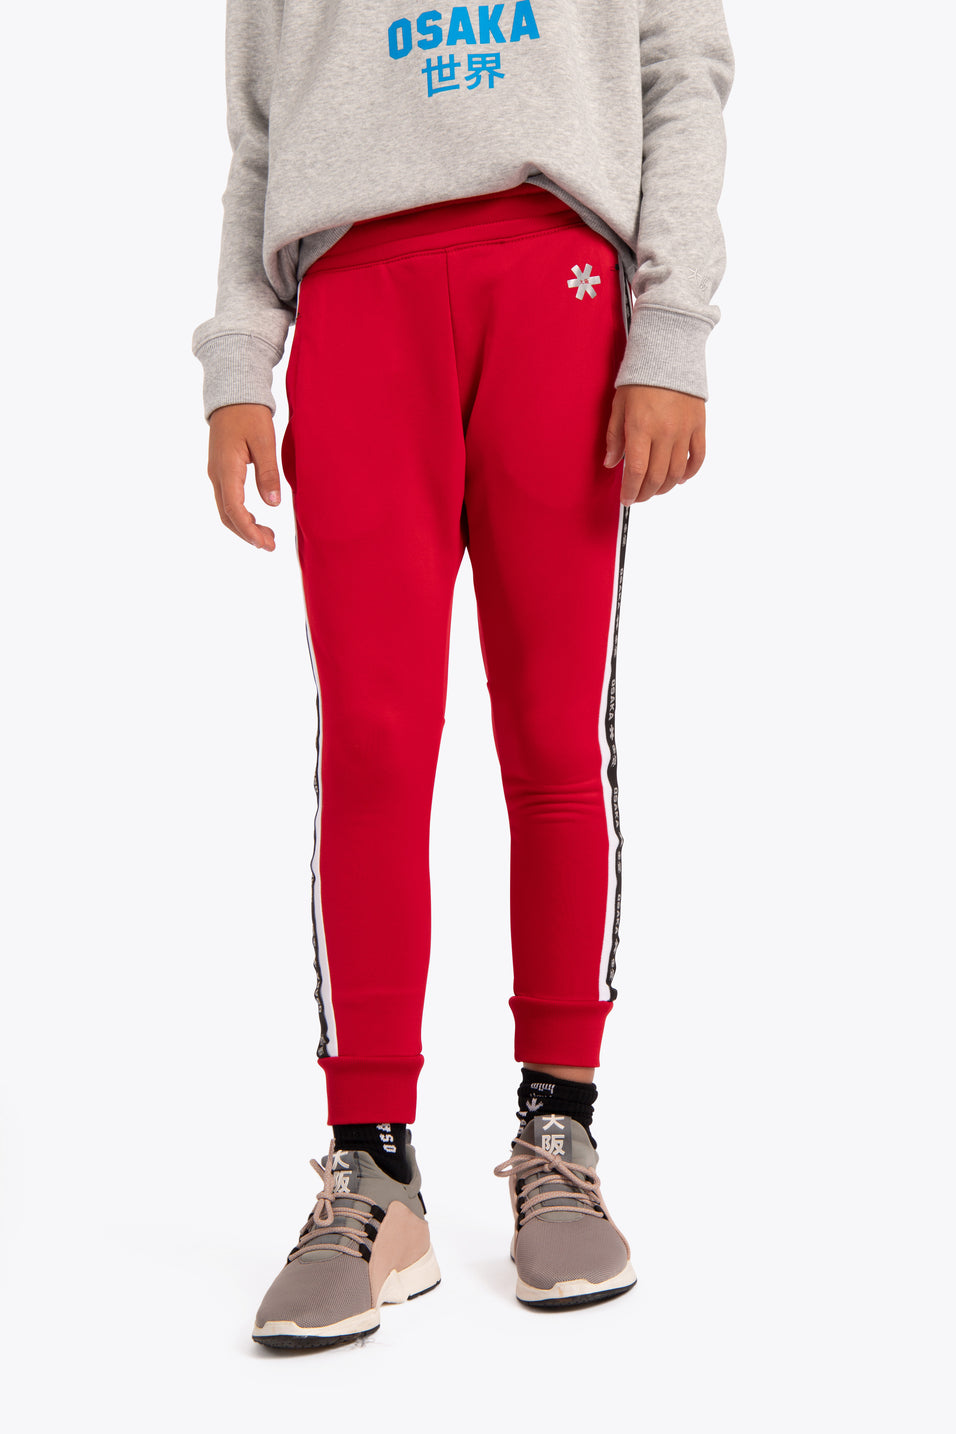 Osaka kids sweatpants red